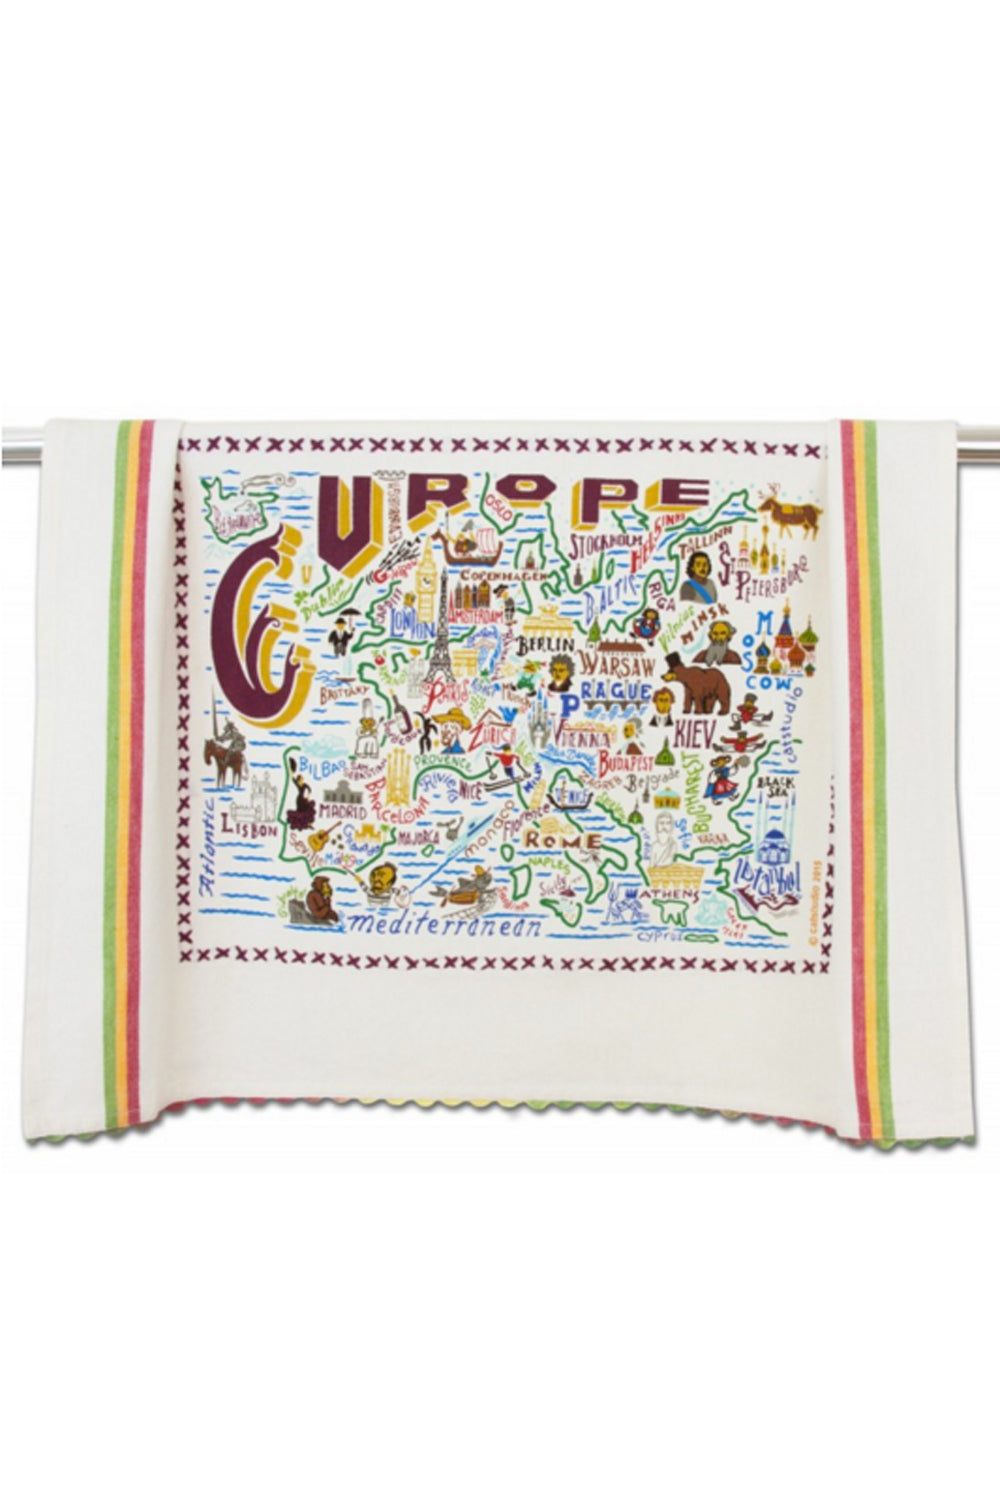 Embroidered Dish Towel - Europe